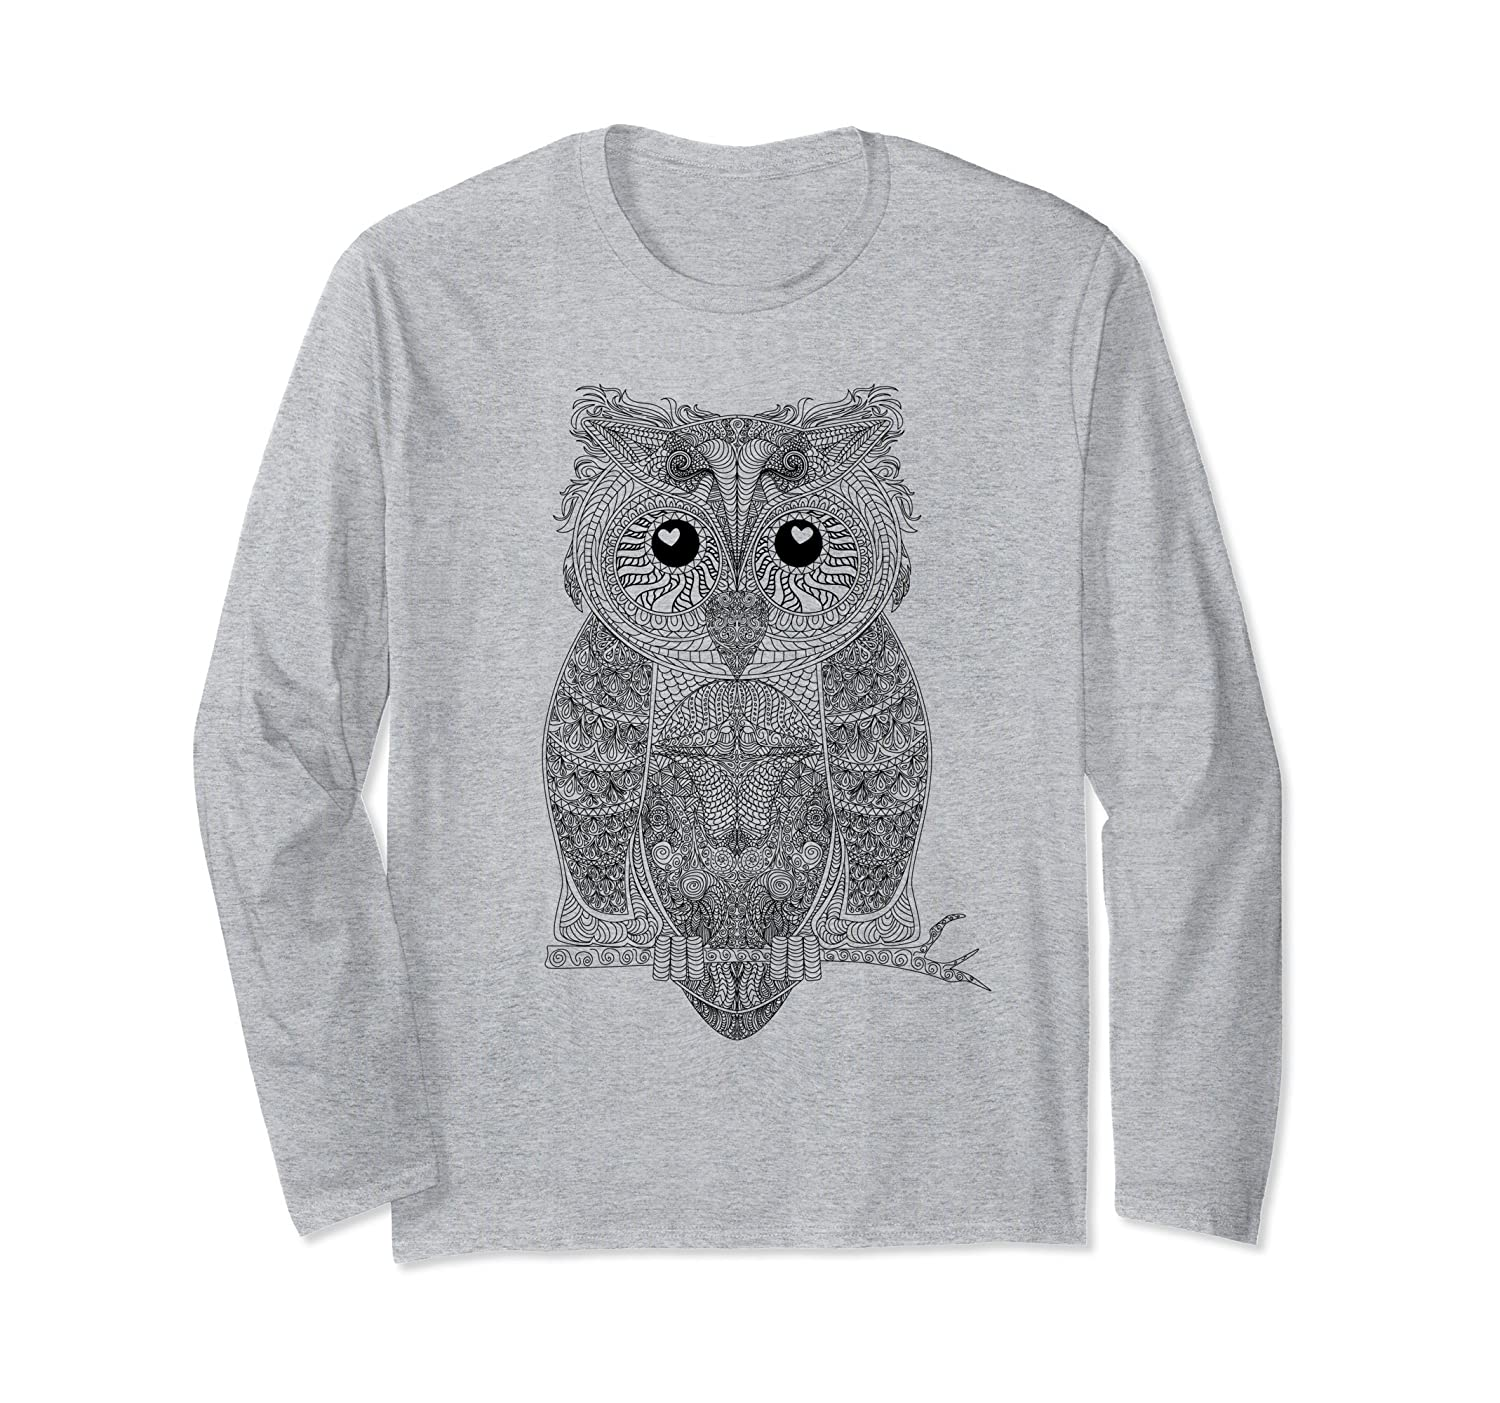 Artsy Artistic Style Design of Owl Long Sleeve T-Shirt-mt